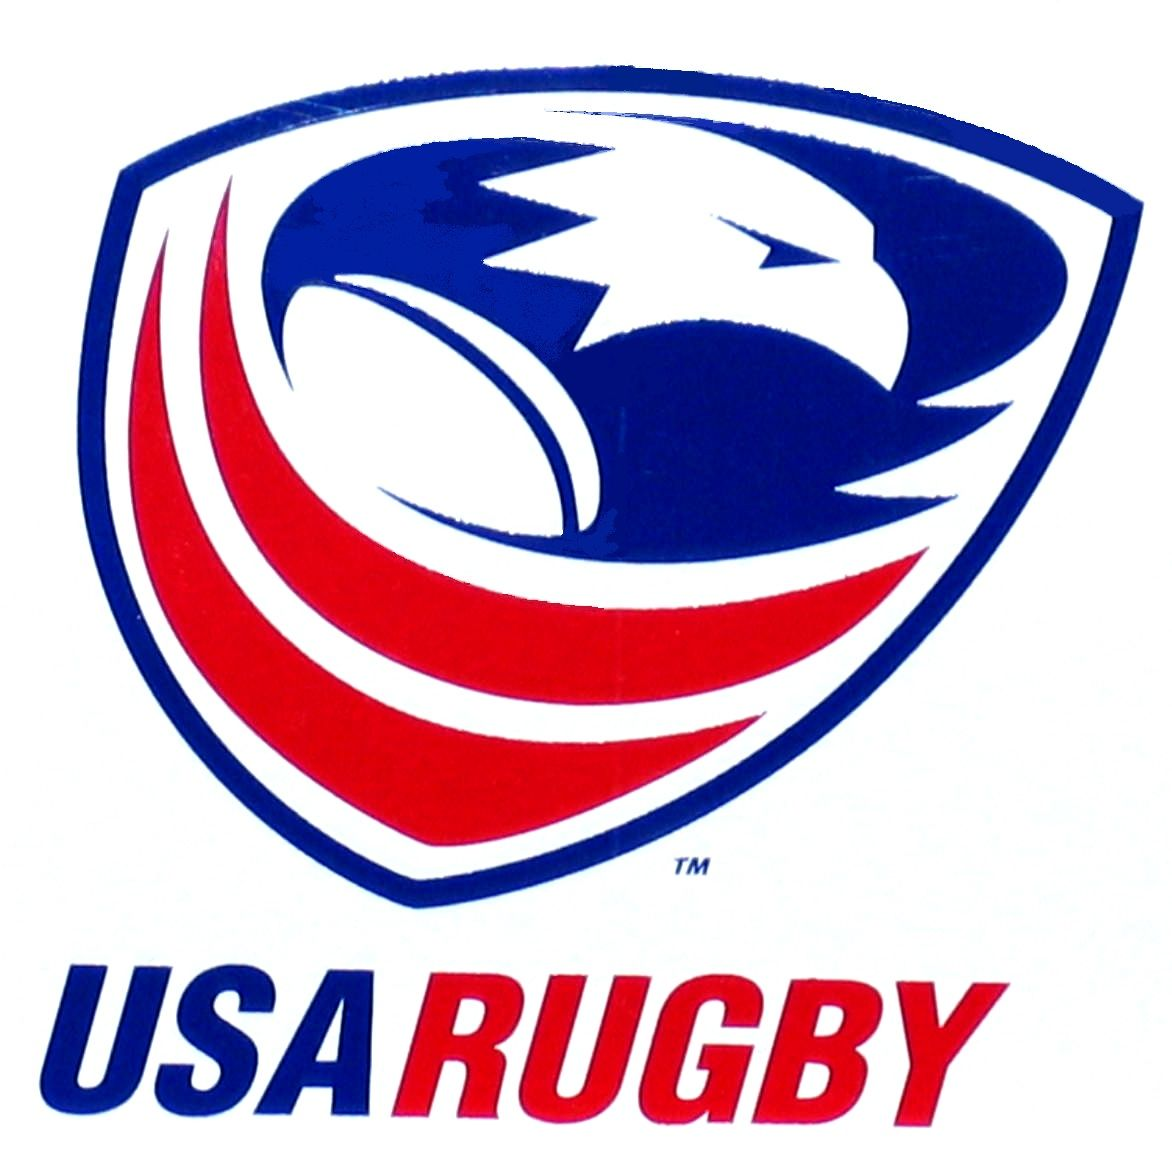 Pin By Shawn Webb On Sports Usa Rugby Rugby Logo Usa Rugby Eagles